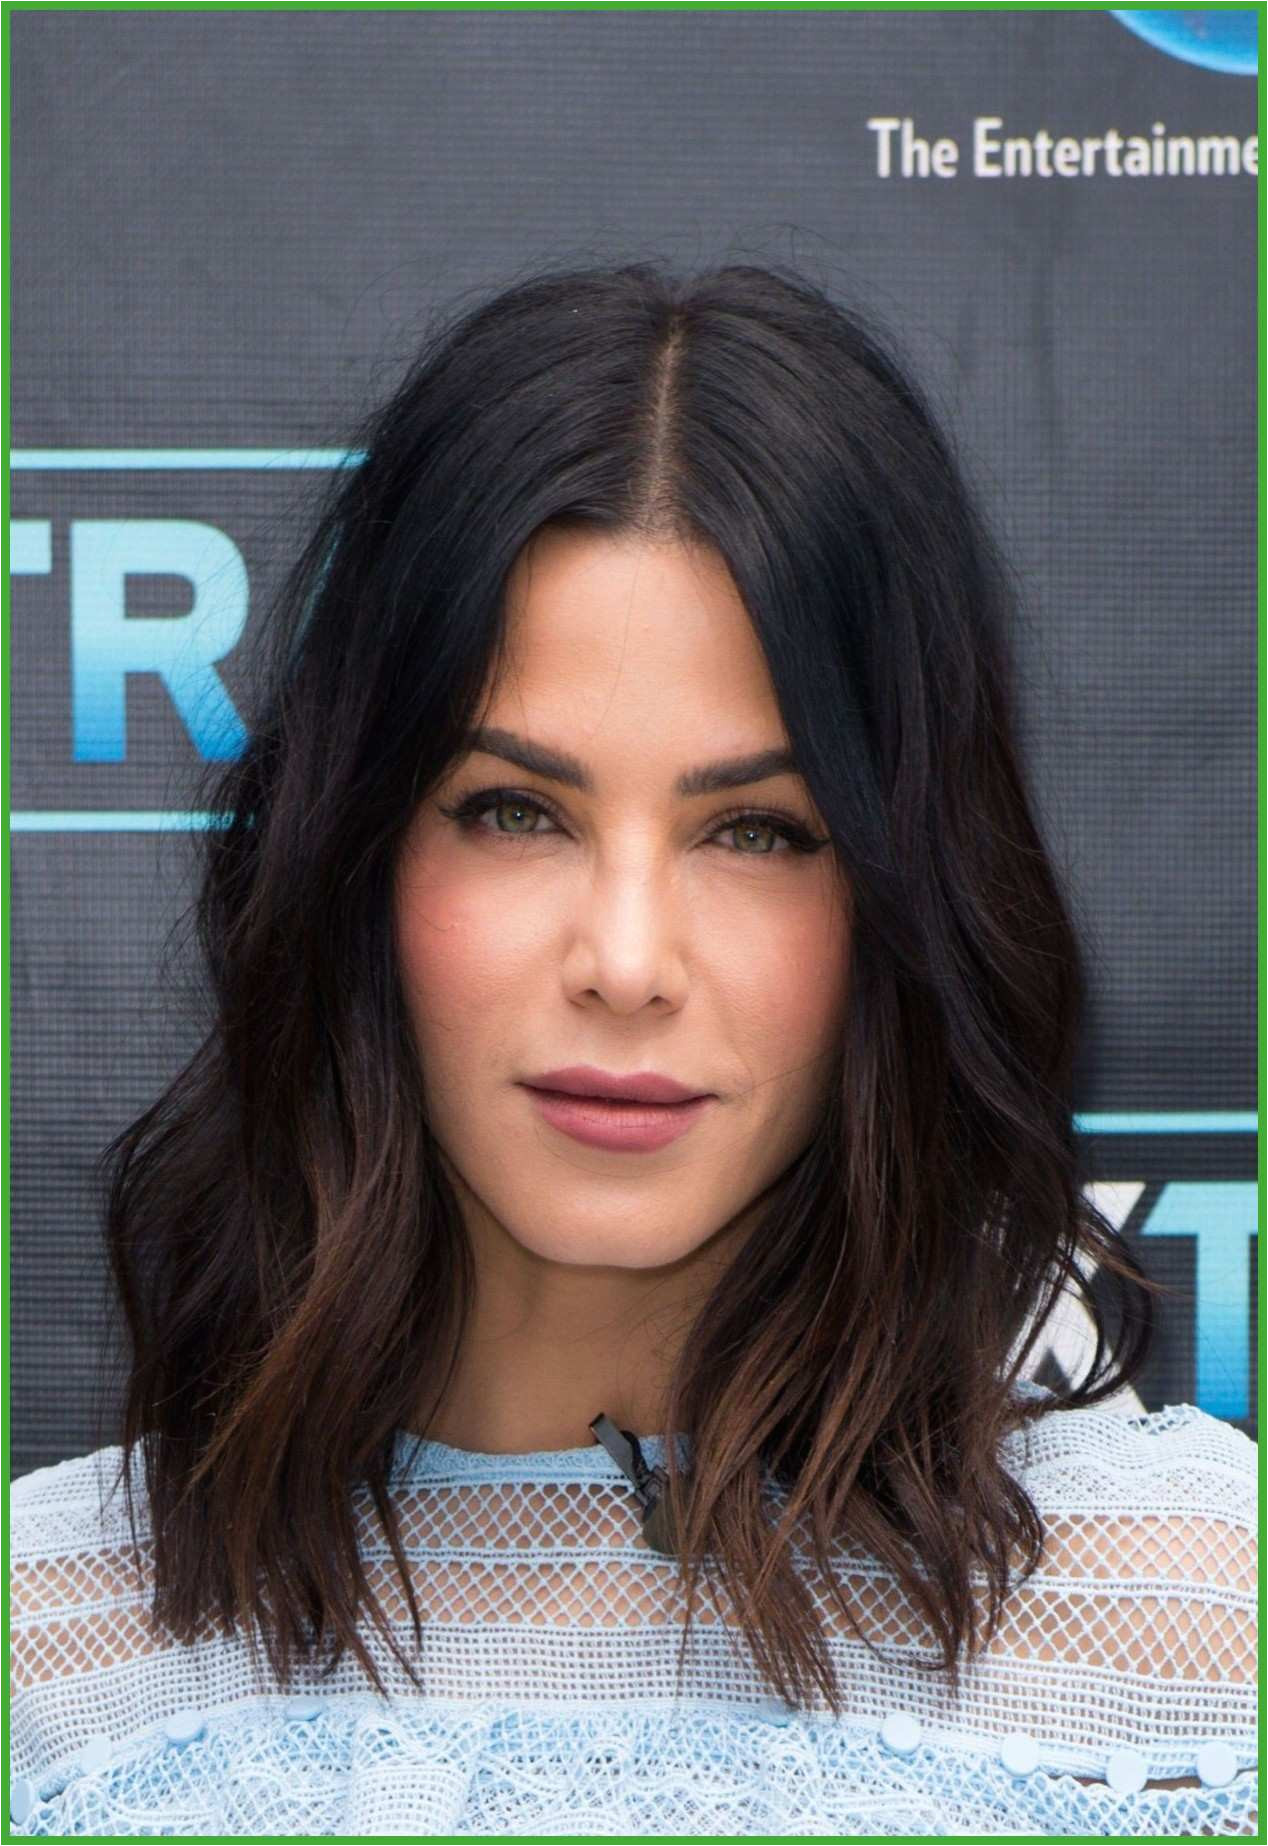 New Hairstyles For Girls With Medium Hair Elegant Bangs With Layers Medium Length Layered Hairstyles With